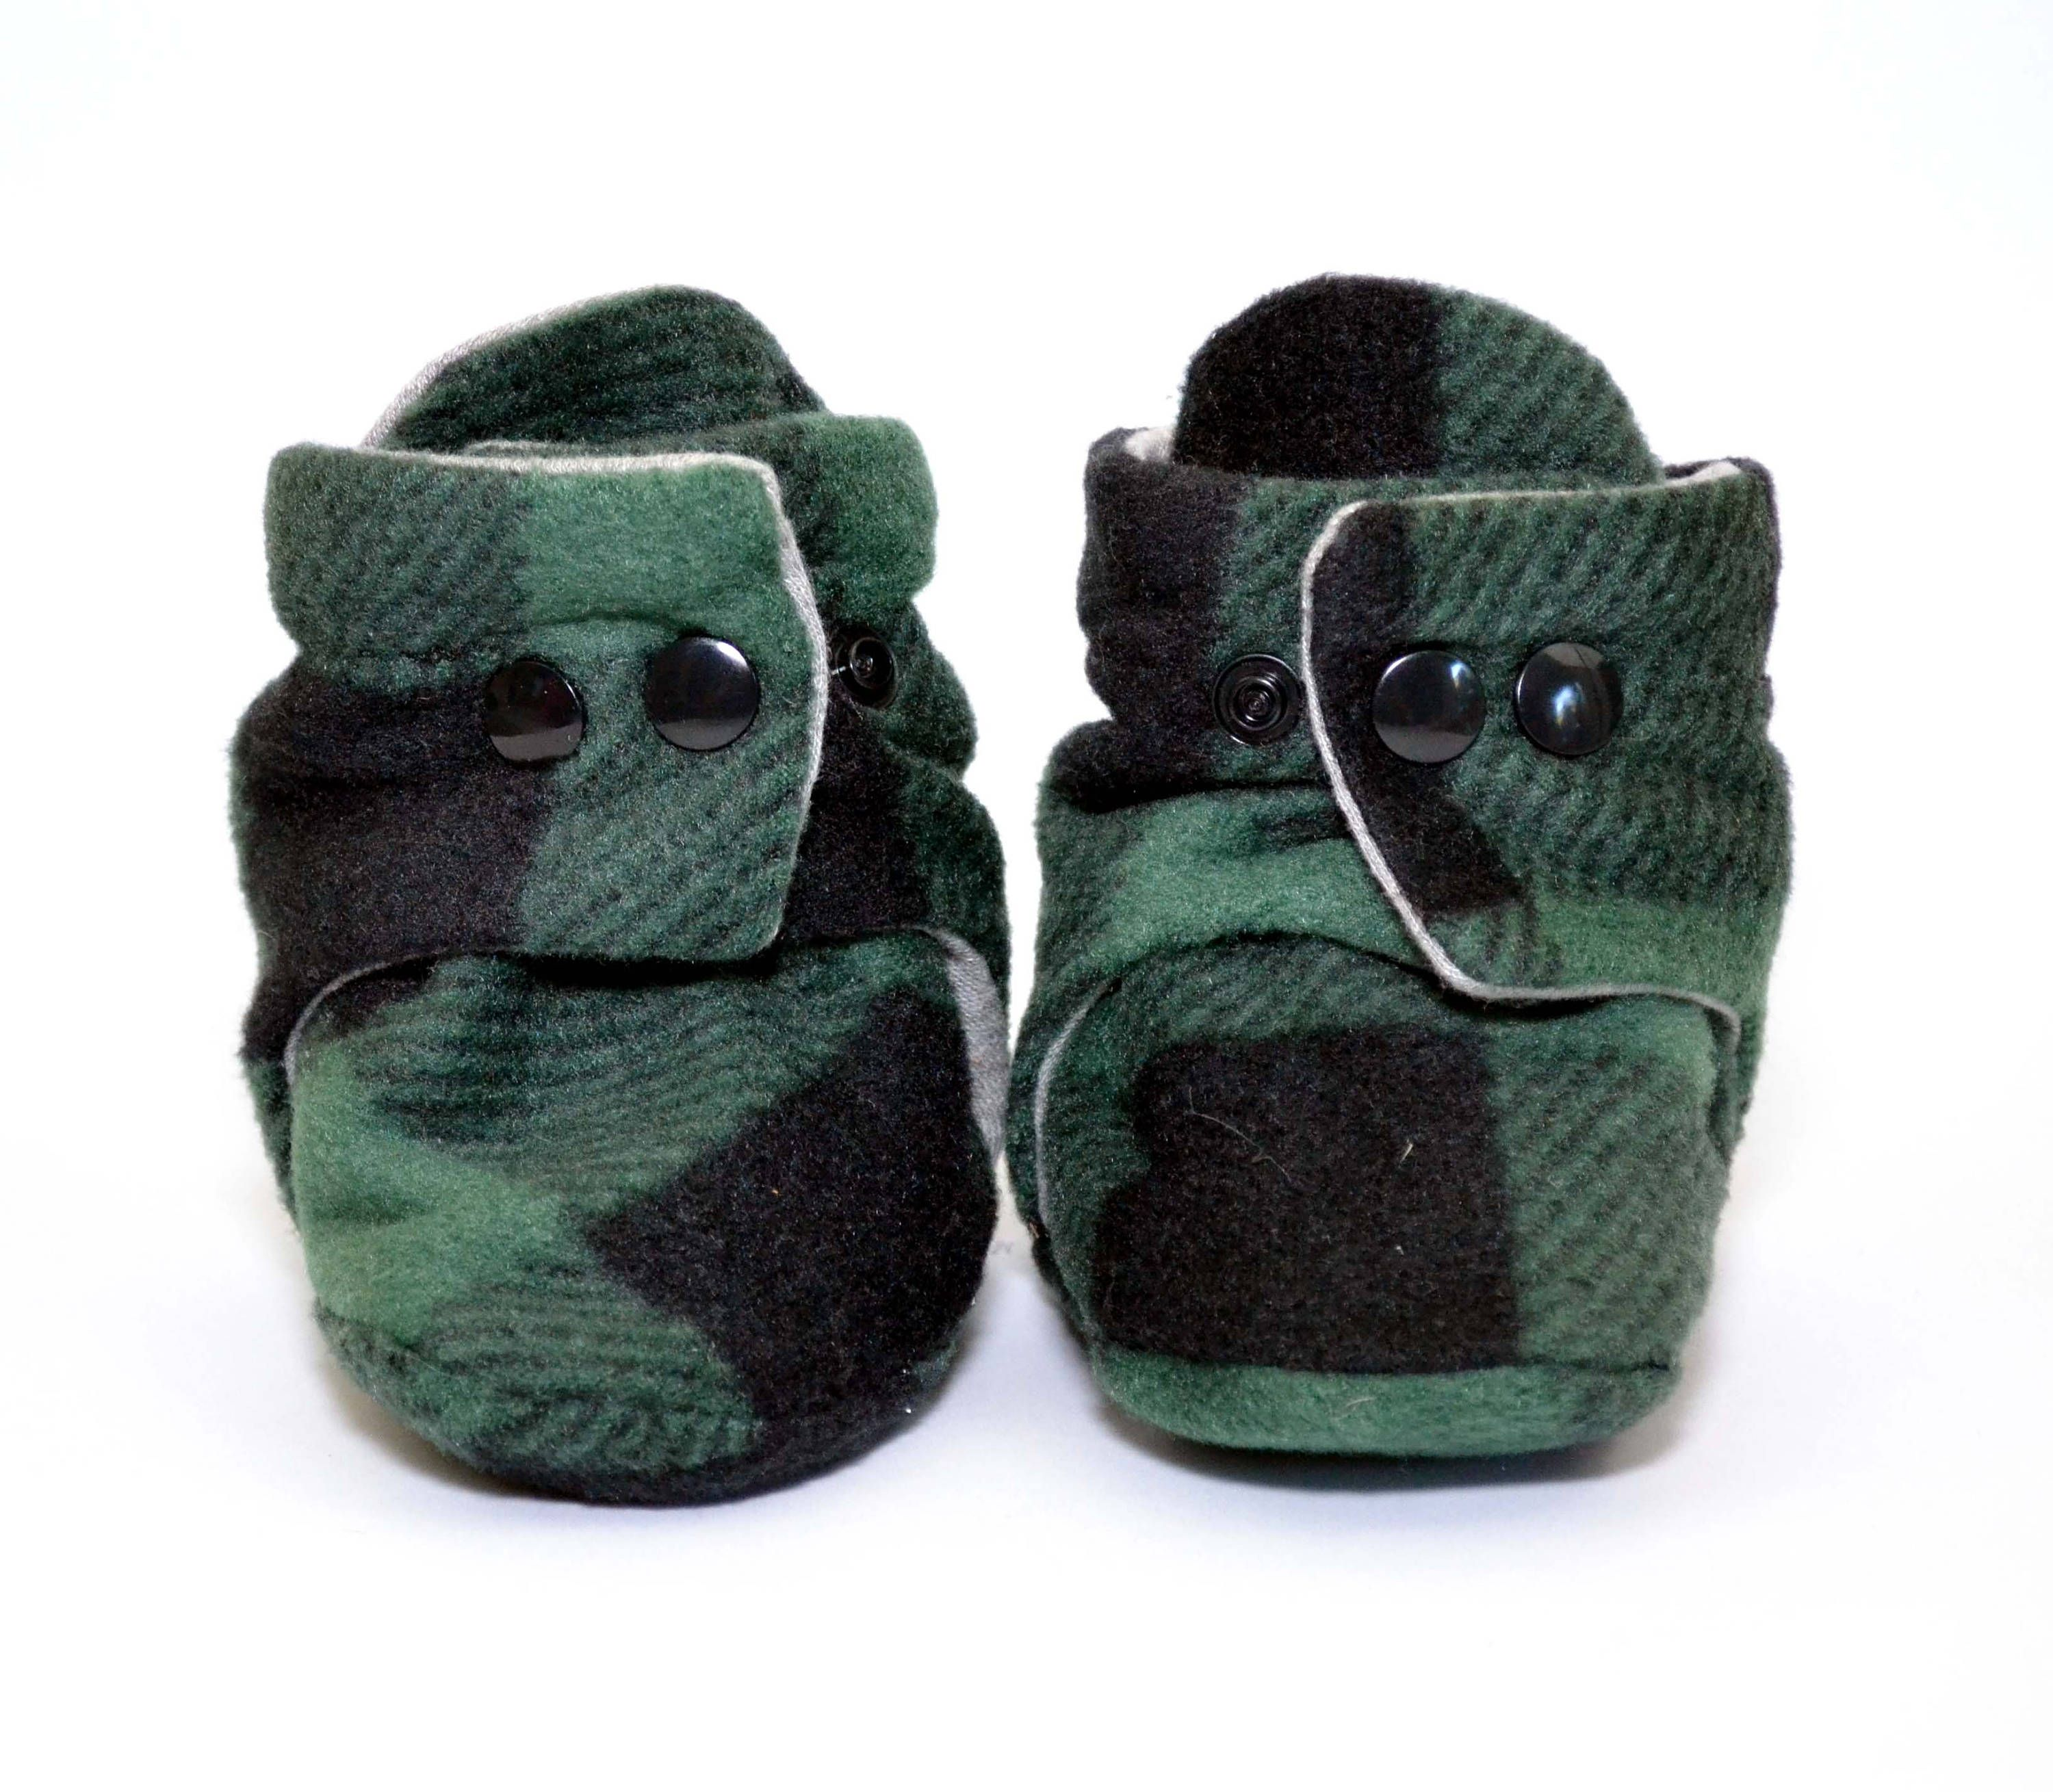 Soft Sole Shoes Soft Sole Baby Shoes Soft Sole Toddler Shoes Soft